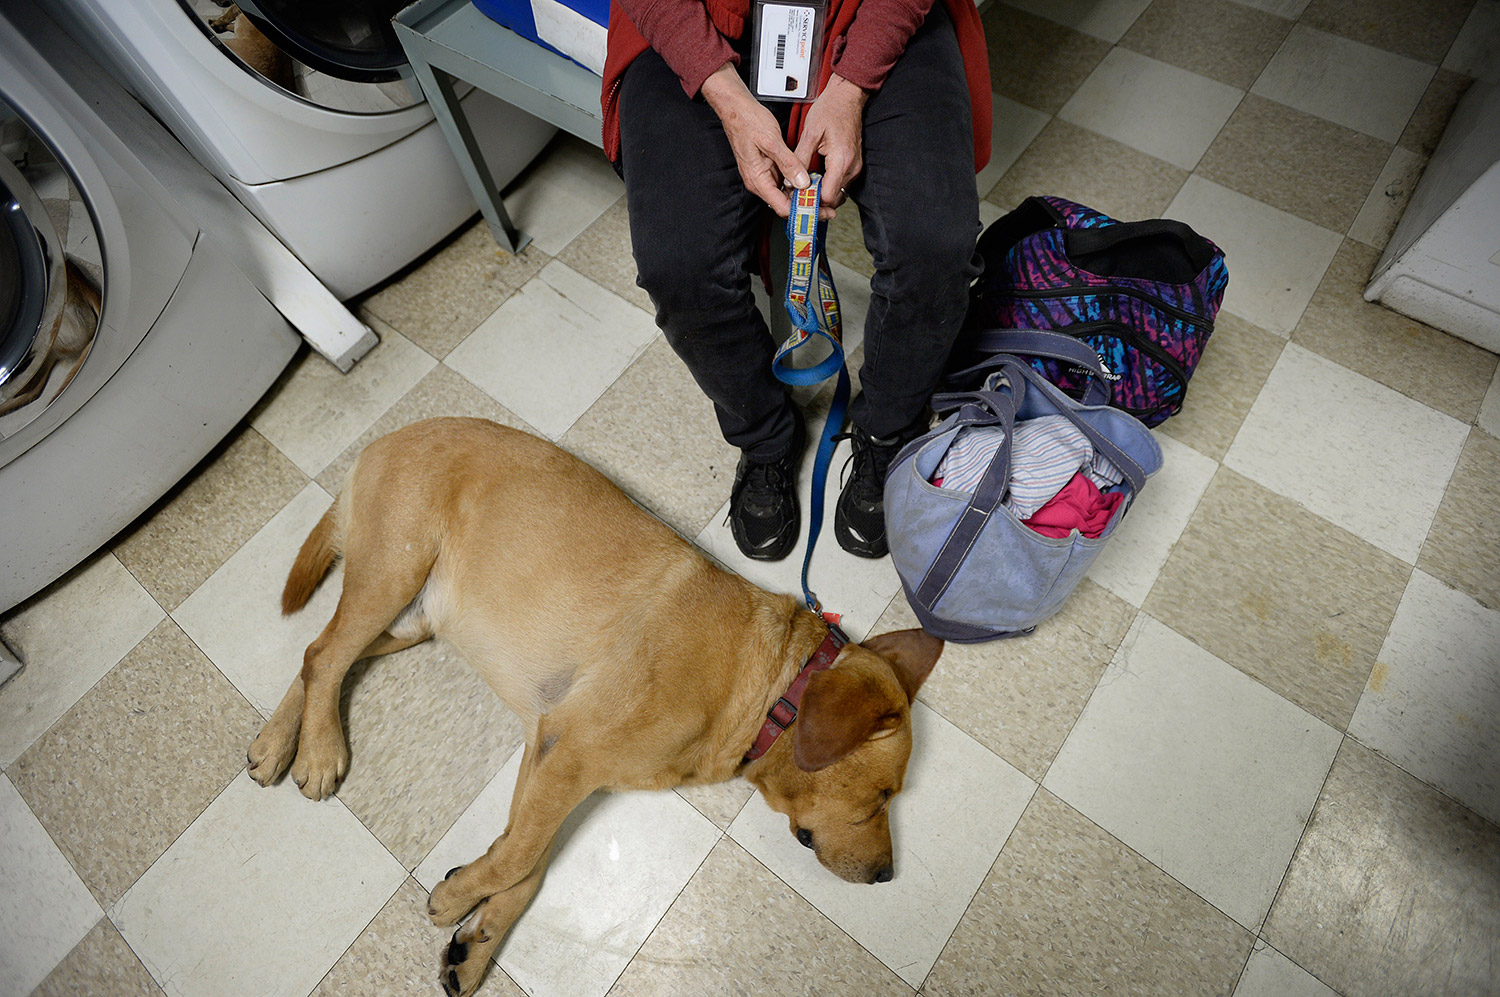 Jane Footer clings to the leash of her dog Timmy after checking in at the Oxford Street Shelter.